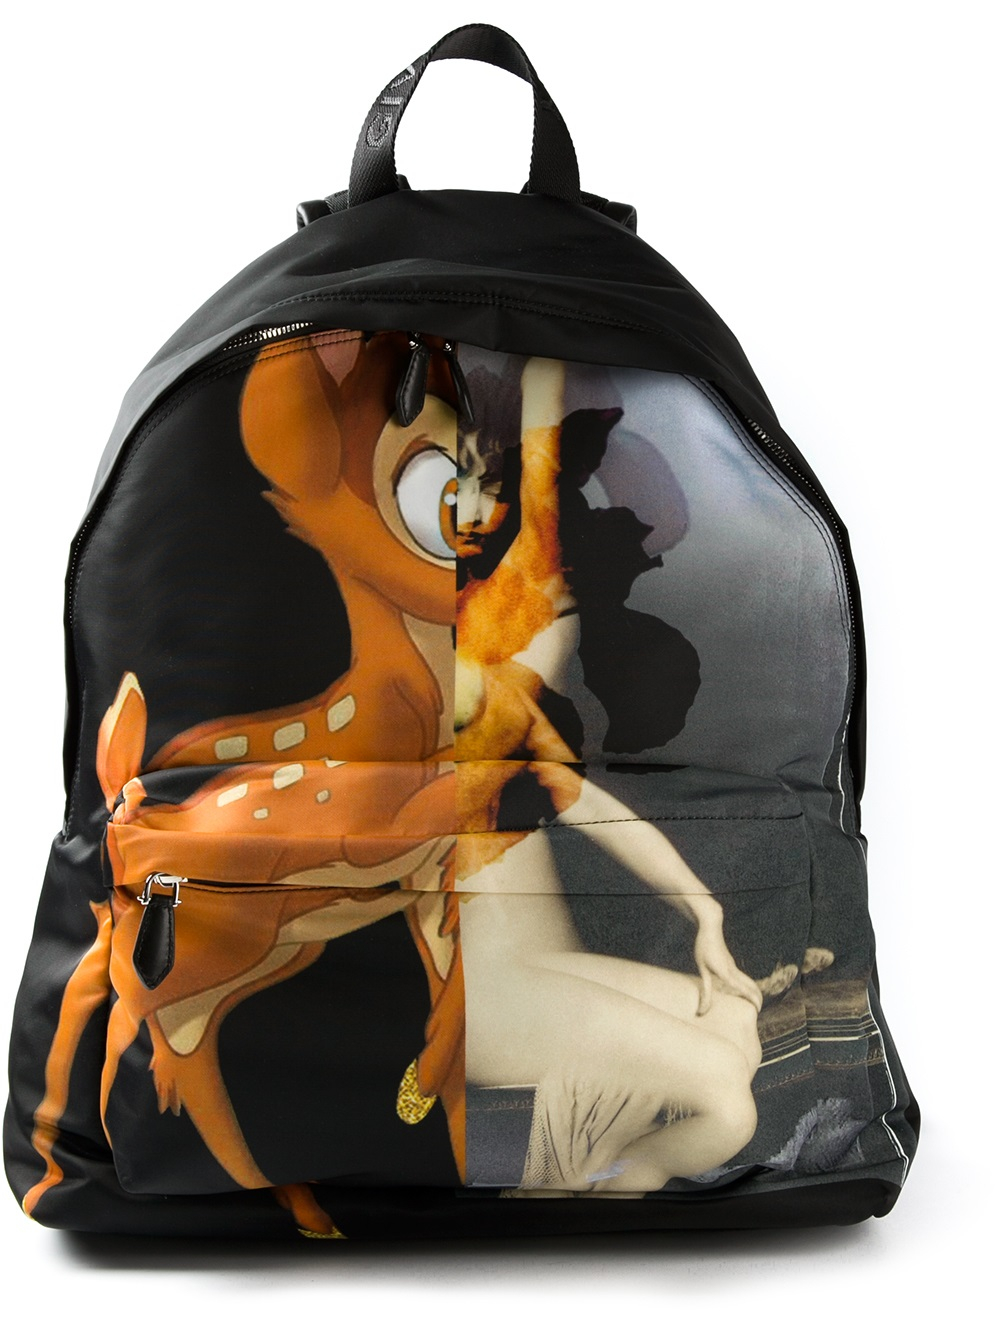 Lyst - Givenchy Bambi Print Backpack in Black for Men 82abb7455a6bf